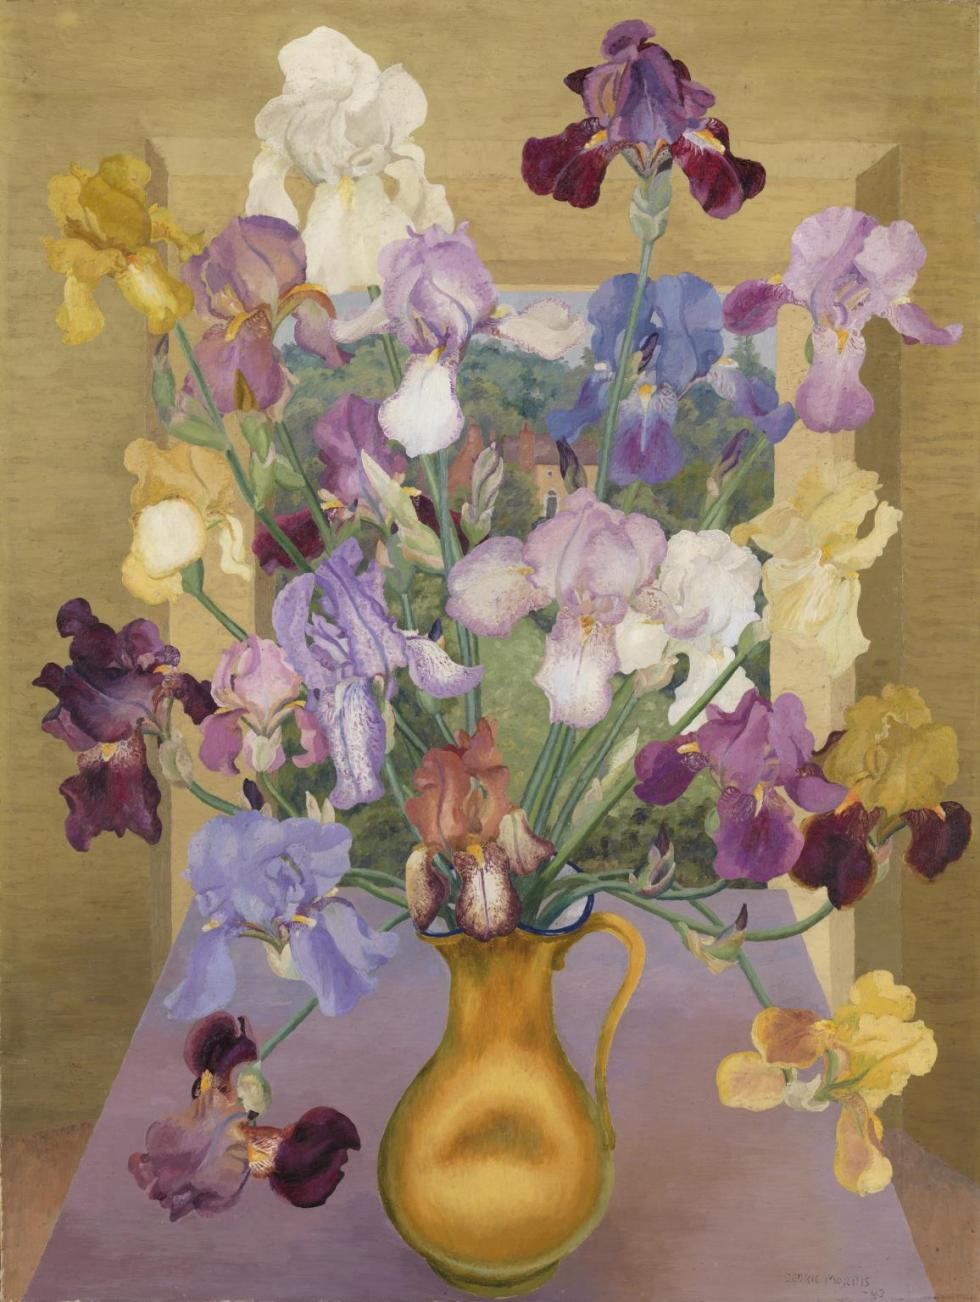 'Iris Seedlings' painted in 1943 by Sir Cedric Morris (copyright: Estate of Sir Cedric Morris)